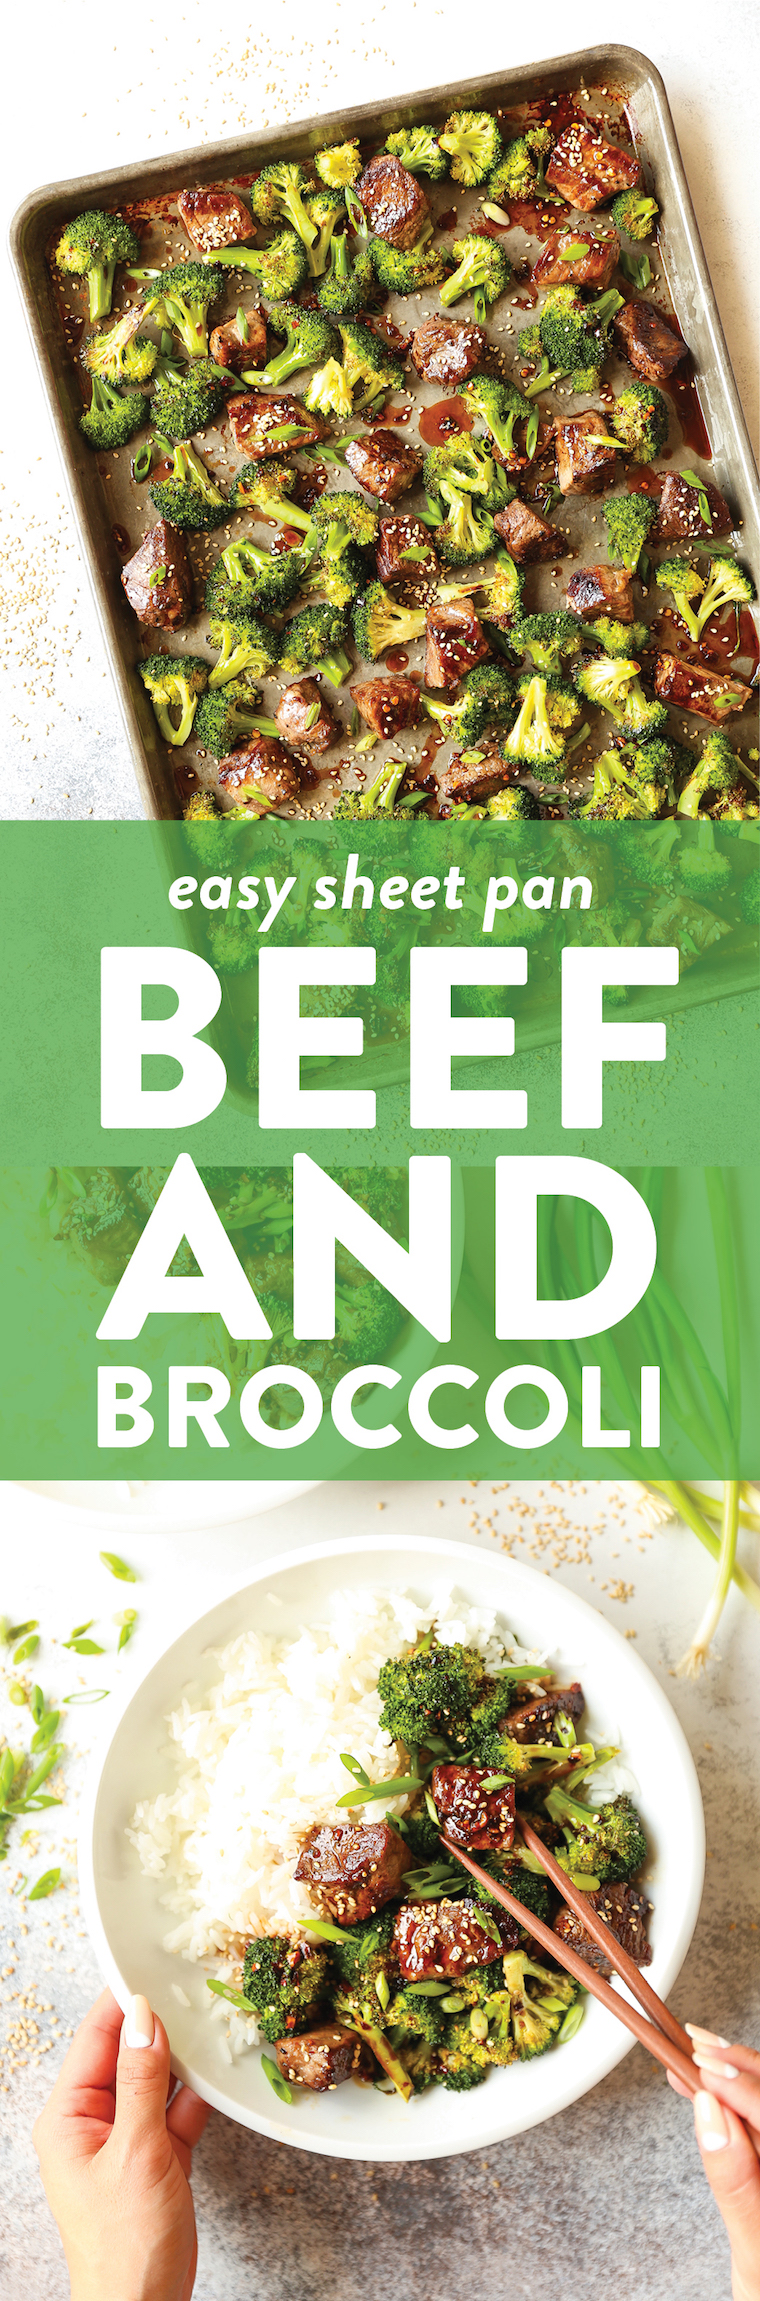 Sheet Pan Beef and Broccoli - Say hello to the easiest beef and broccoli of your life! No fuss, less dishes, yet it's 10000x better than take-out. Win-win!